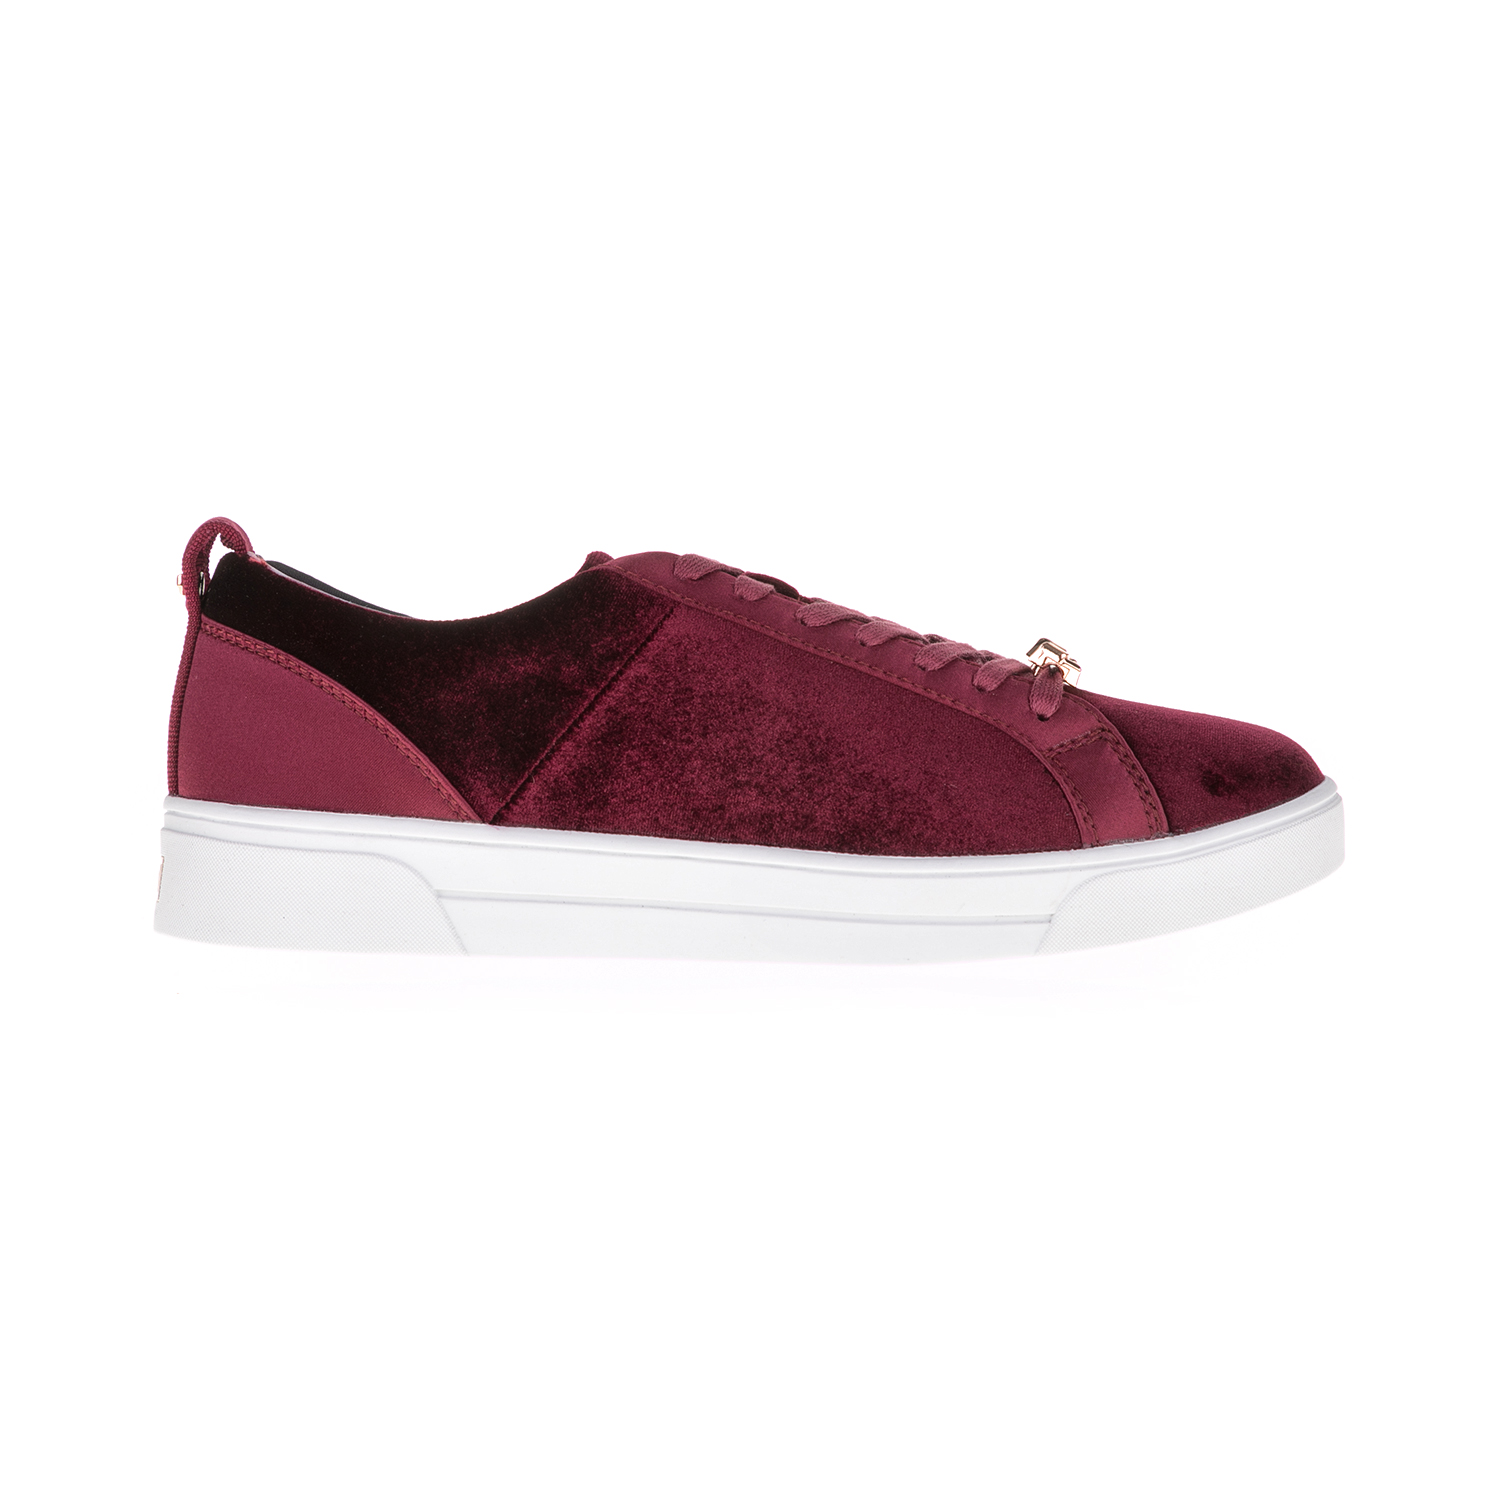 TED BAKER – Γυναικεία sneakers KULEI TED BAKER κόκκινα